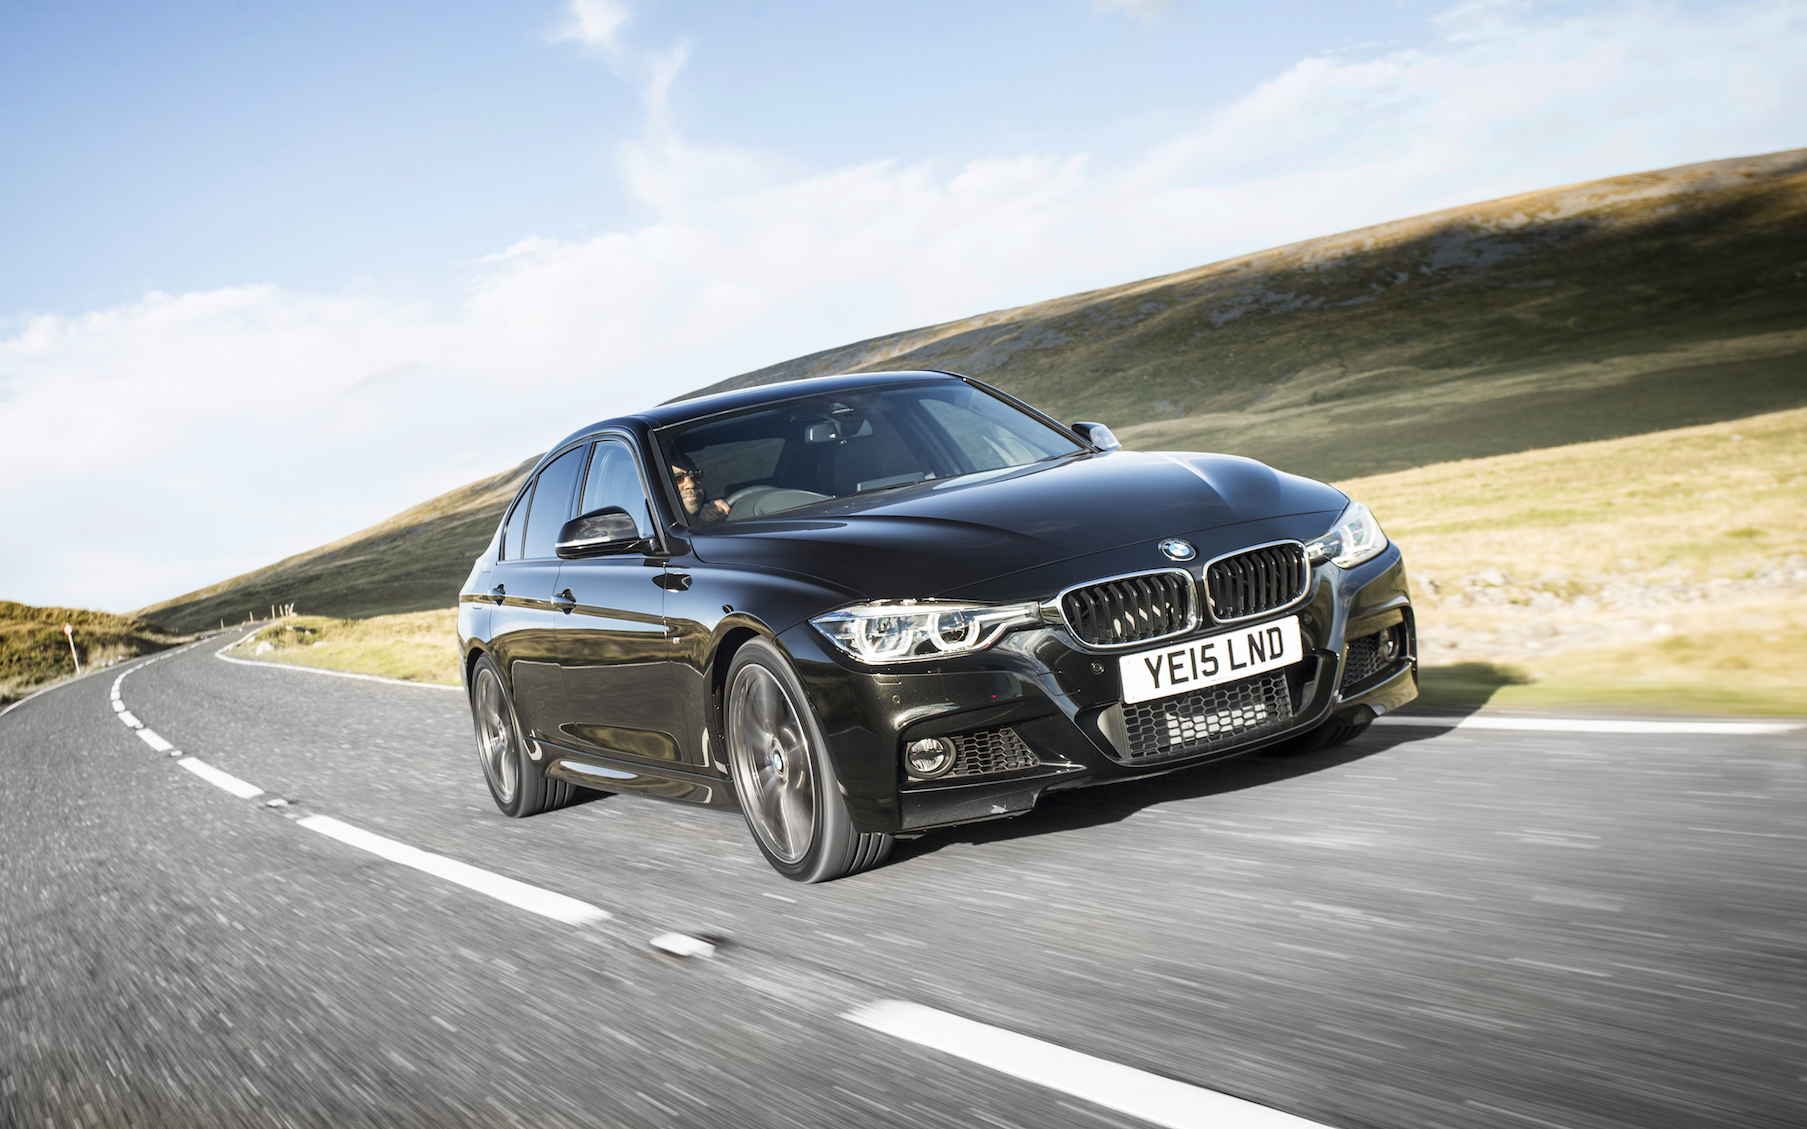 bmw f30 3 series lci information pictures and videos. Black Bedroom Furniture Sets. Home Design Ideas